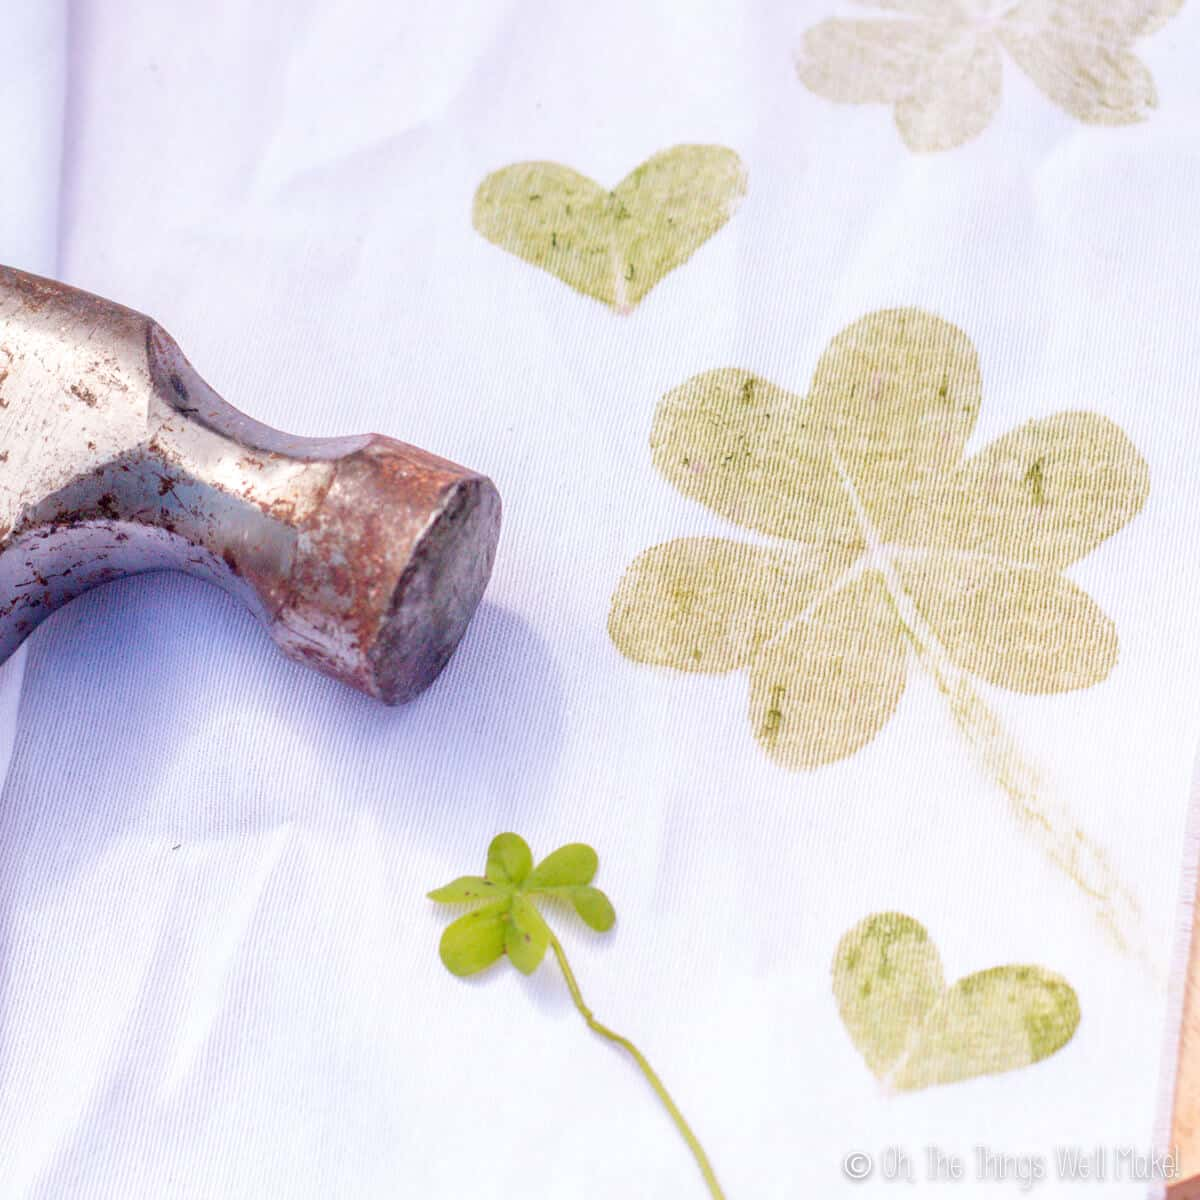 Closeup of a clover on a white cloth that has been covered with prints made by hammering clovers onto the cloth.